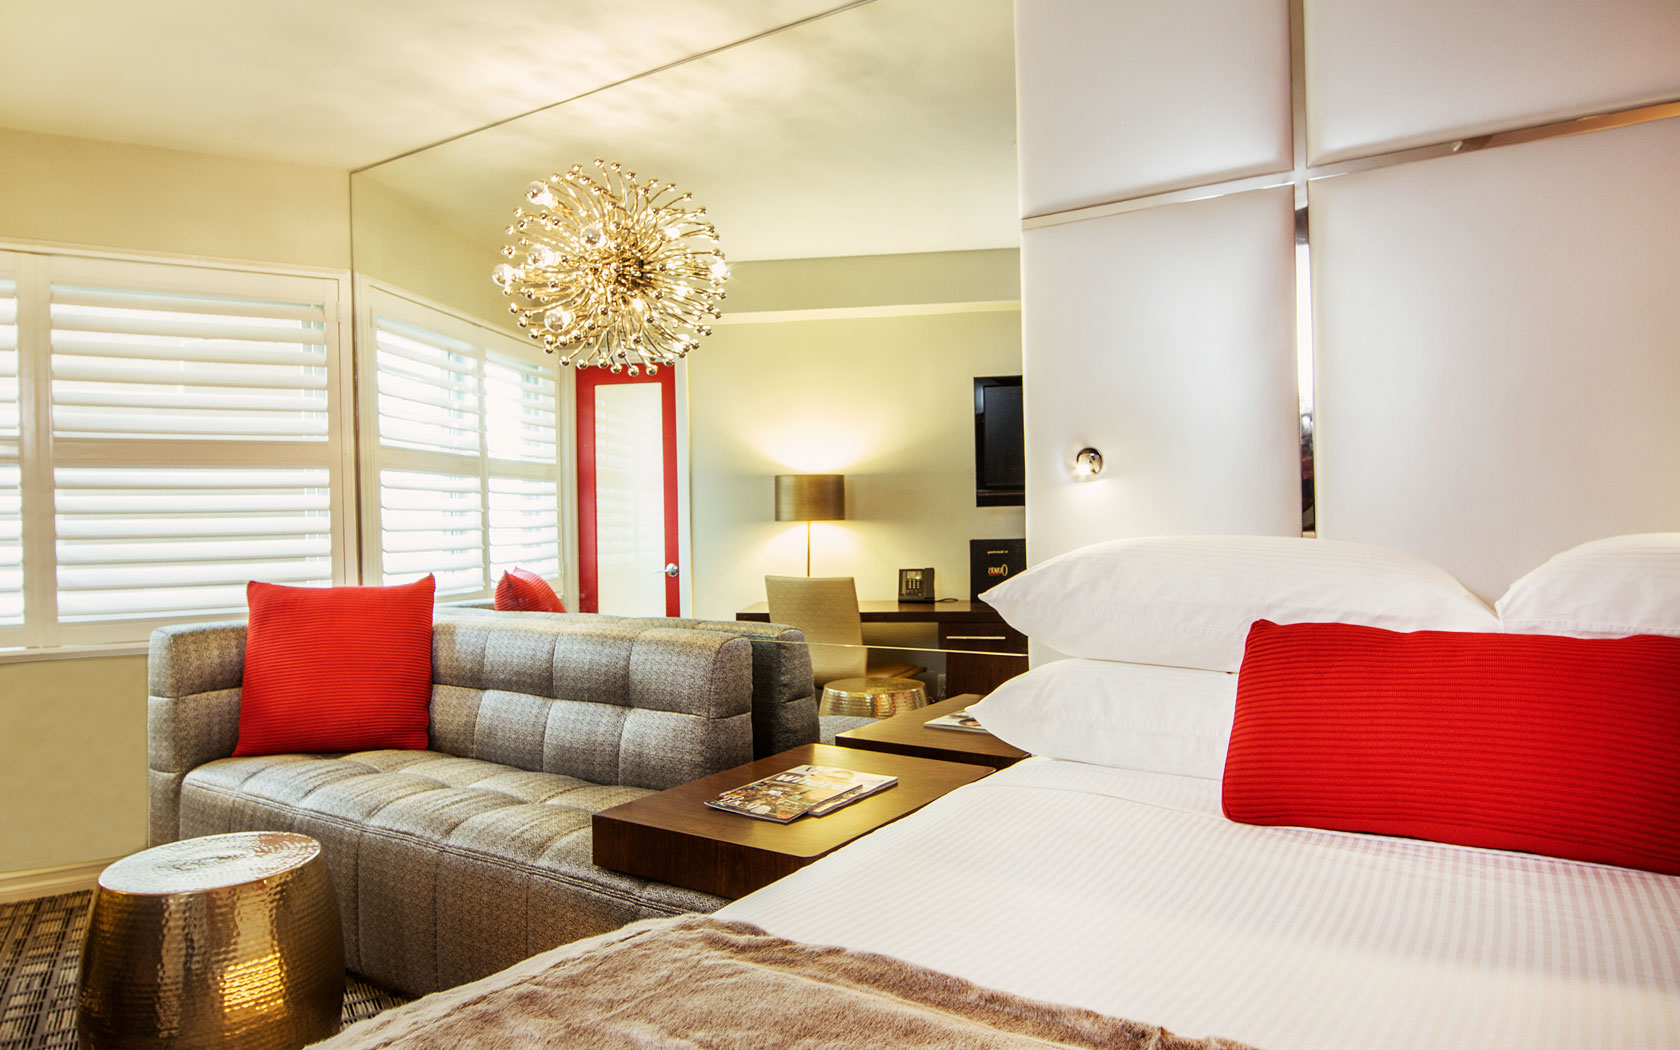 White bed with red pillows and mirrored wall